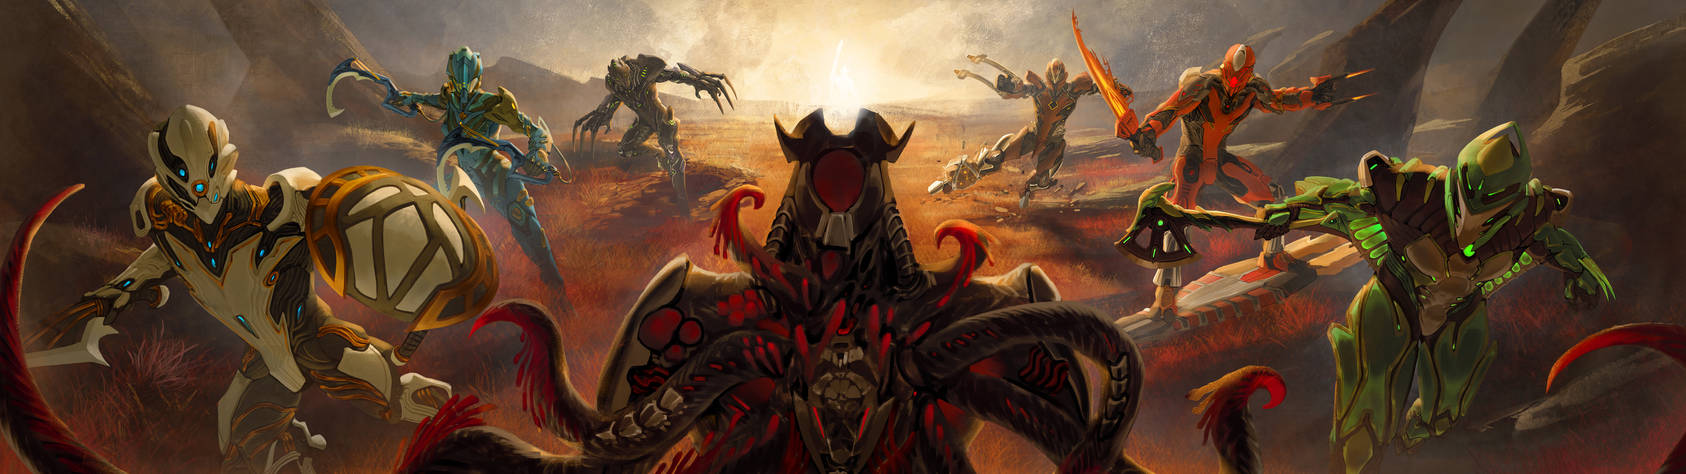 Warframe Bionicle crossover by Kevin-Glint